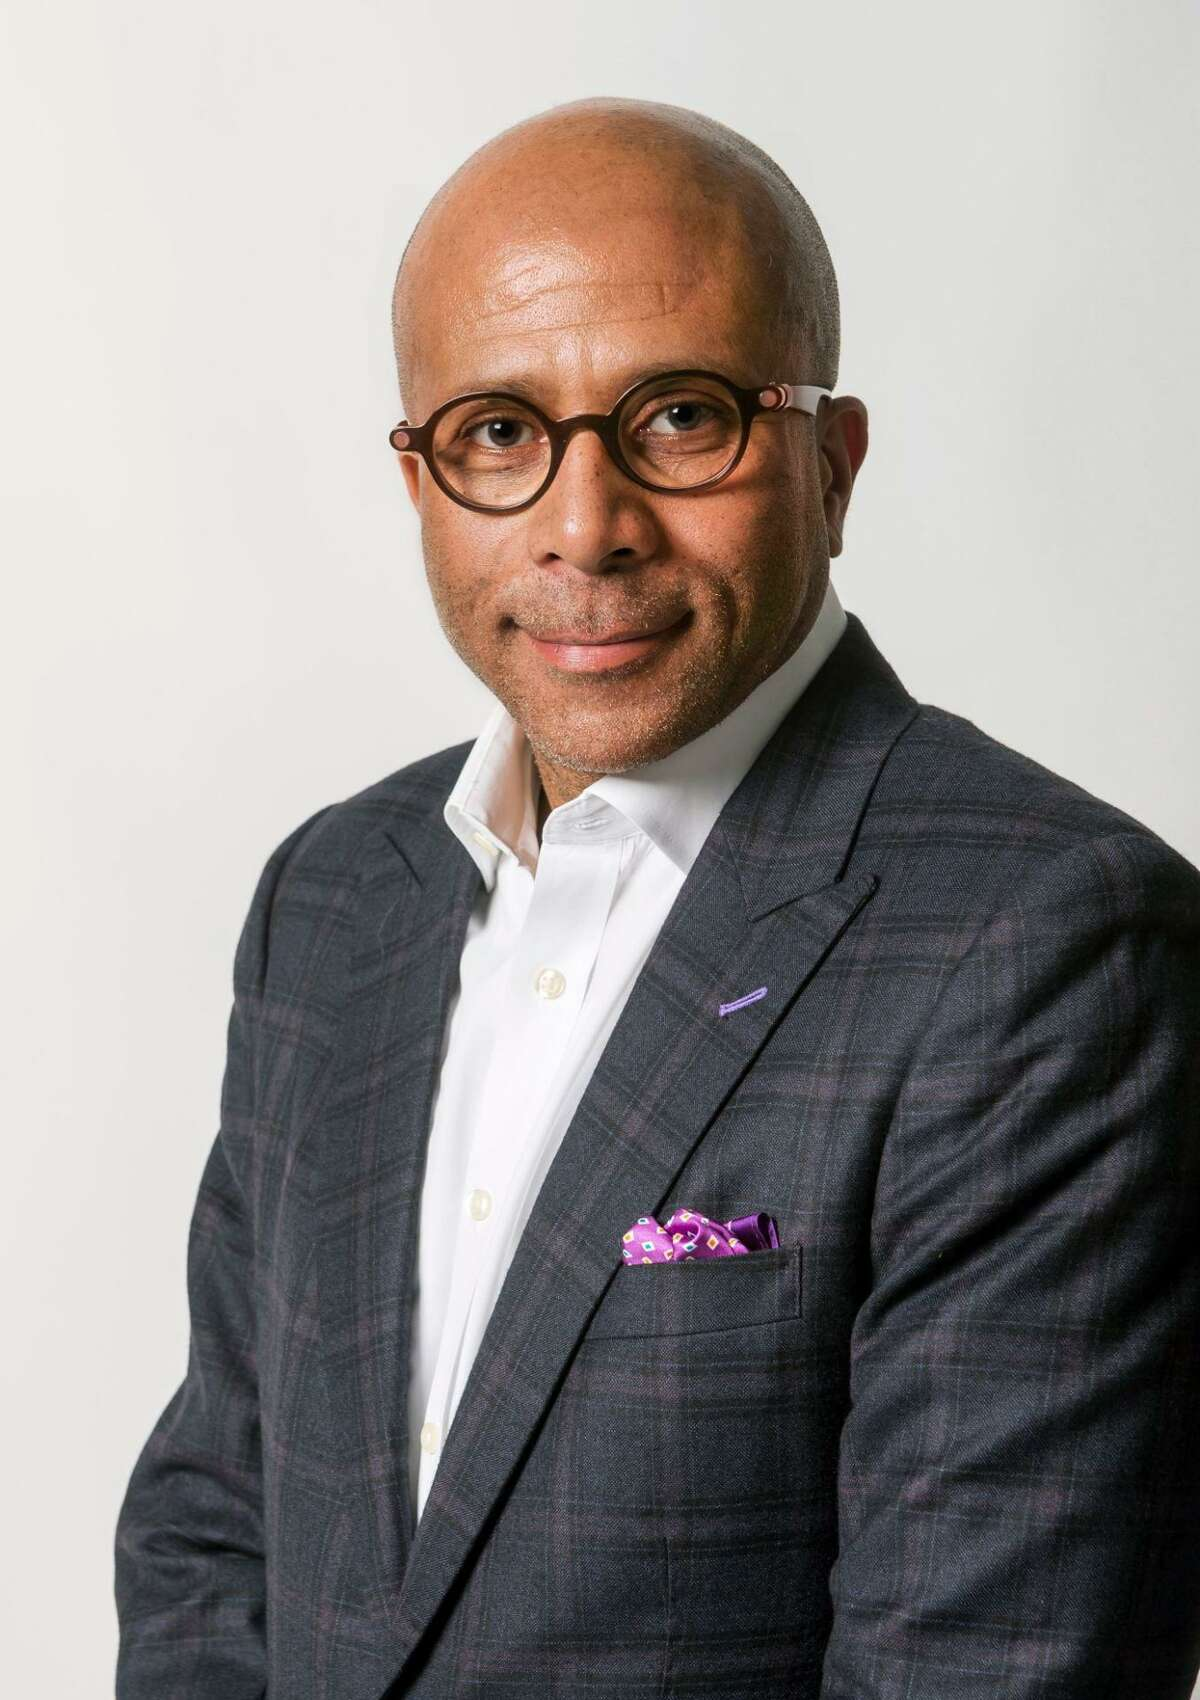 Anthony Pinn is the founding director of the Rice University's recently launched Center for African and African American Studies. The center, launched Oct. 16, will be a hub for conversations on race, racism, the various histories and identities of the diaspora, and the